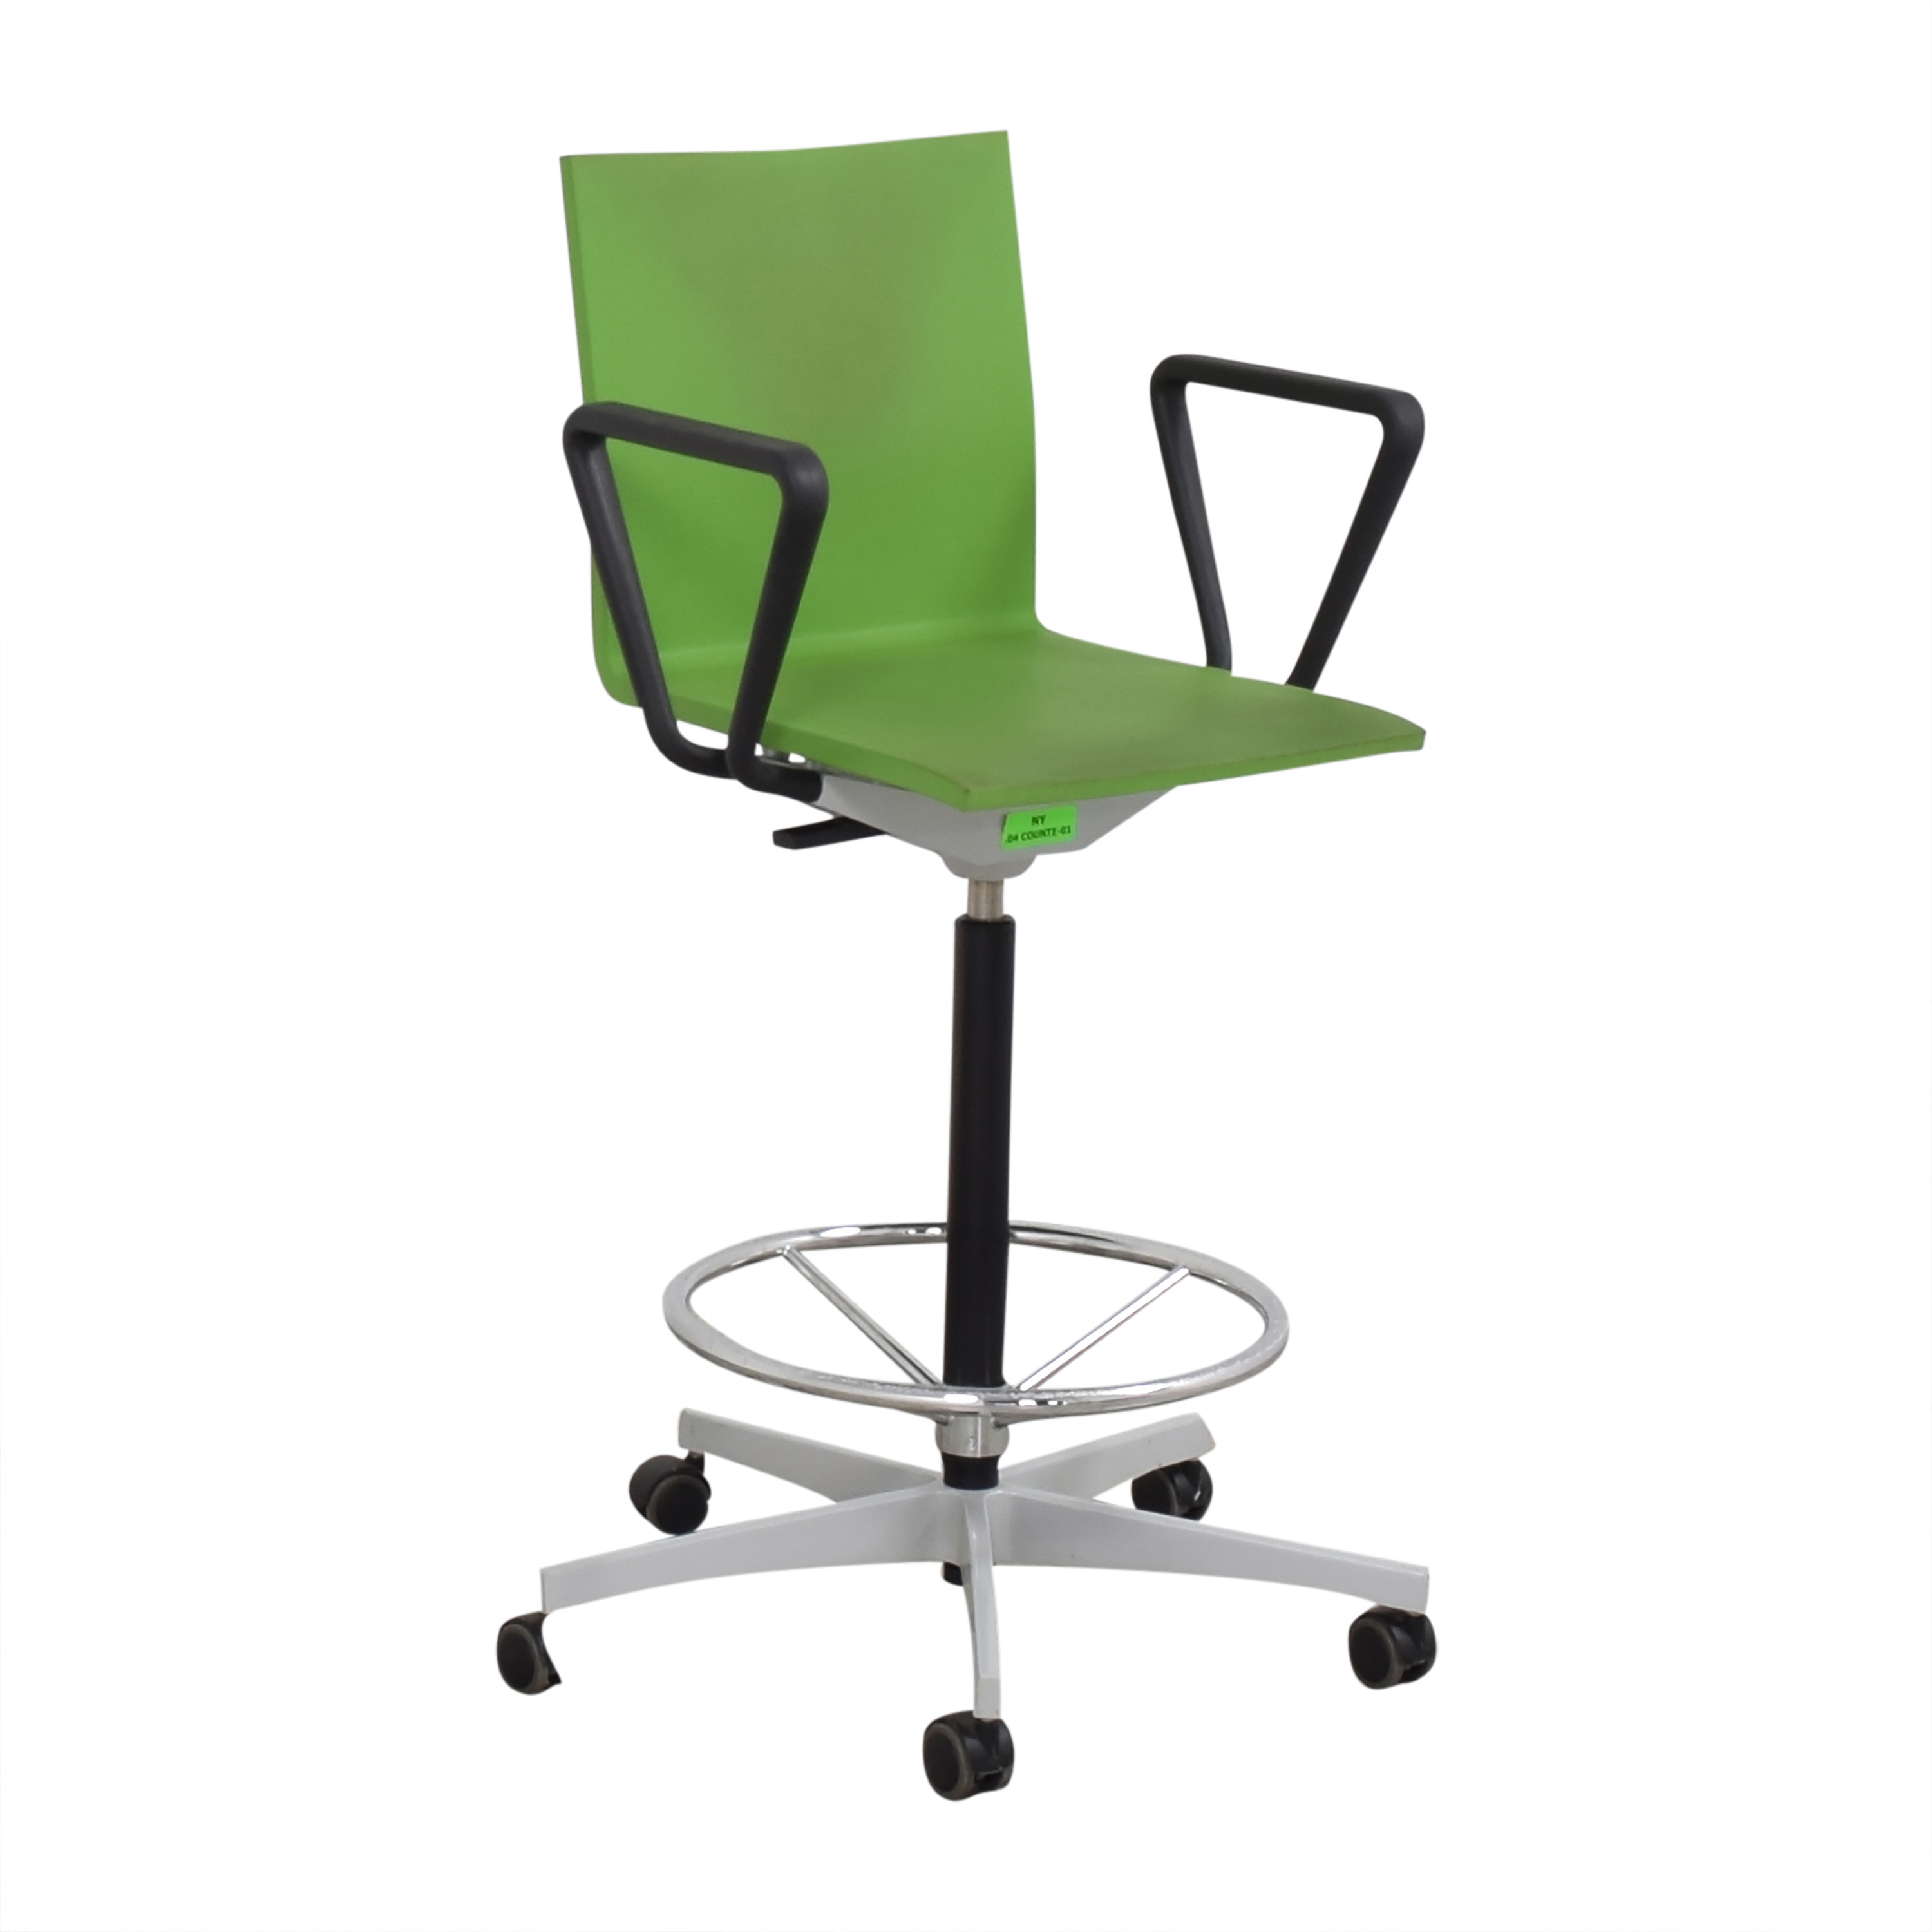 Vitra Vitra .04 Counter Arm Chair used